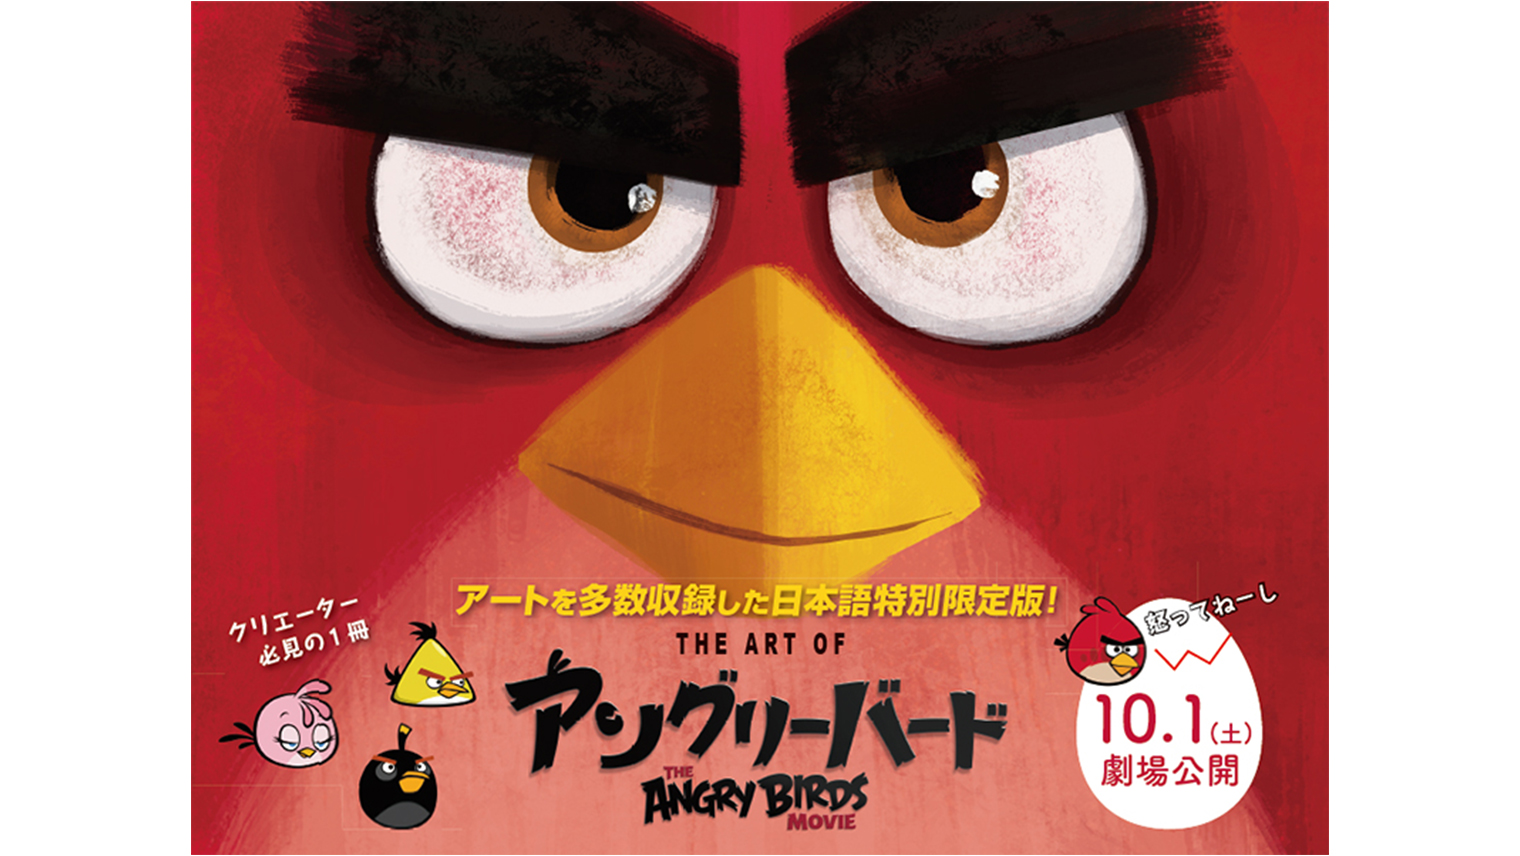 The Art of アングリーバード The Art of the Angry Birds Movie 日本語版